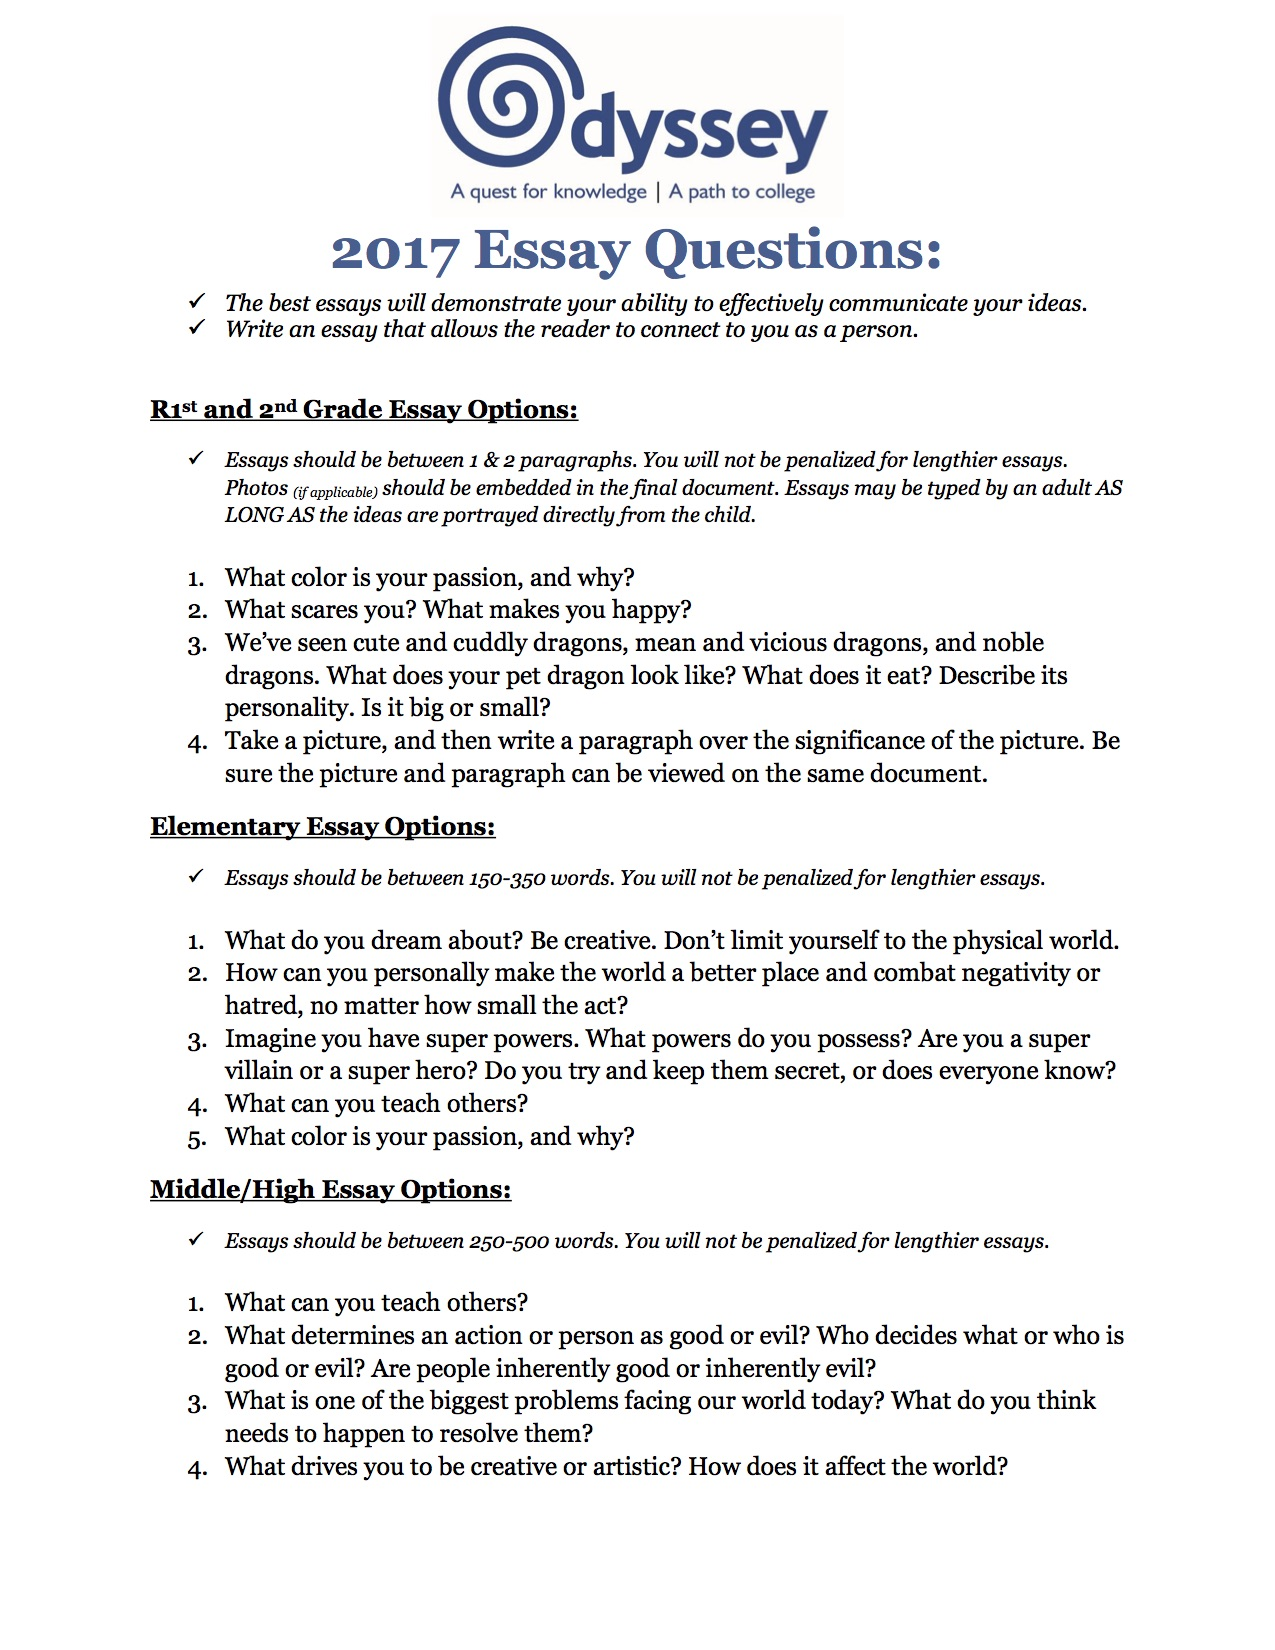 American civil war essay questions Pinterest